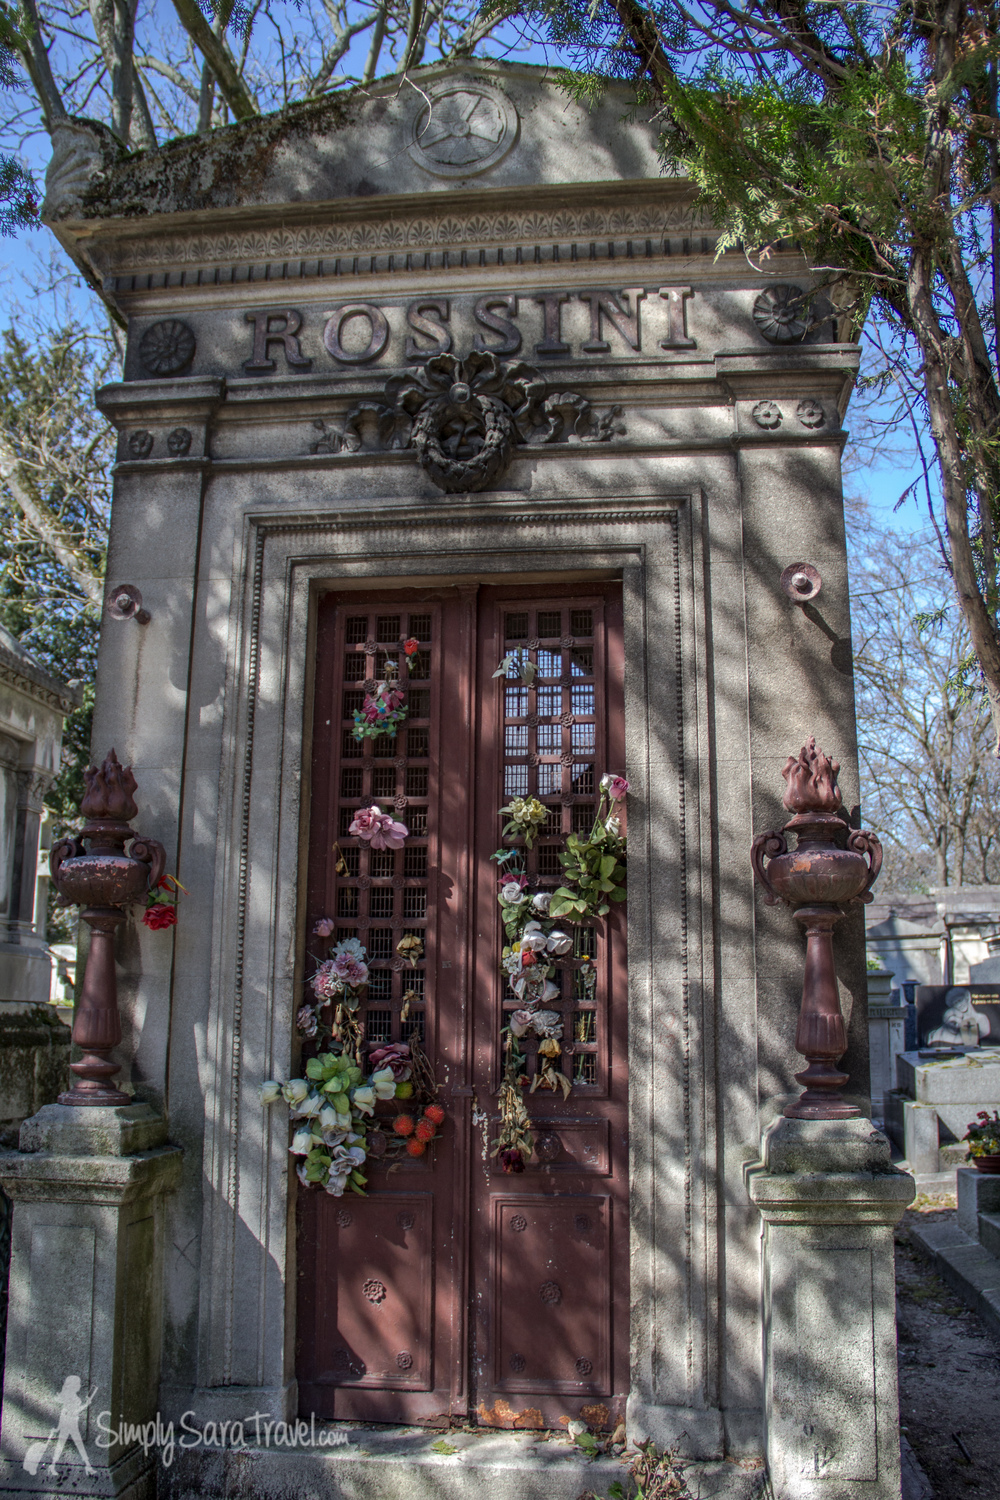 Italian composer Gioachino Rossini's crypt can be found easily near the main entrance. His remains have been transferred to Florence but his former resting place still honors his memory.